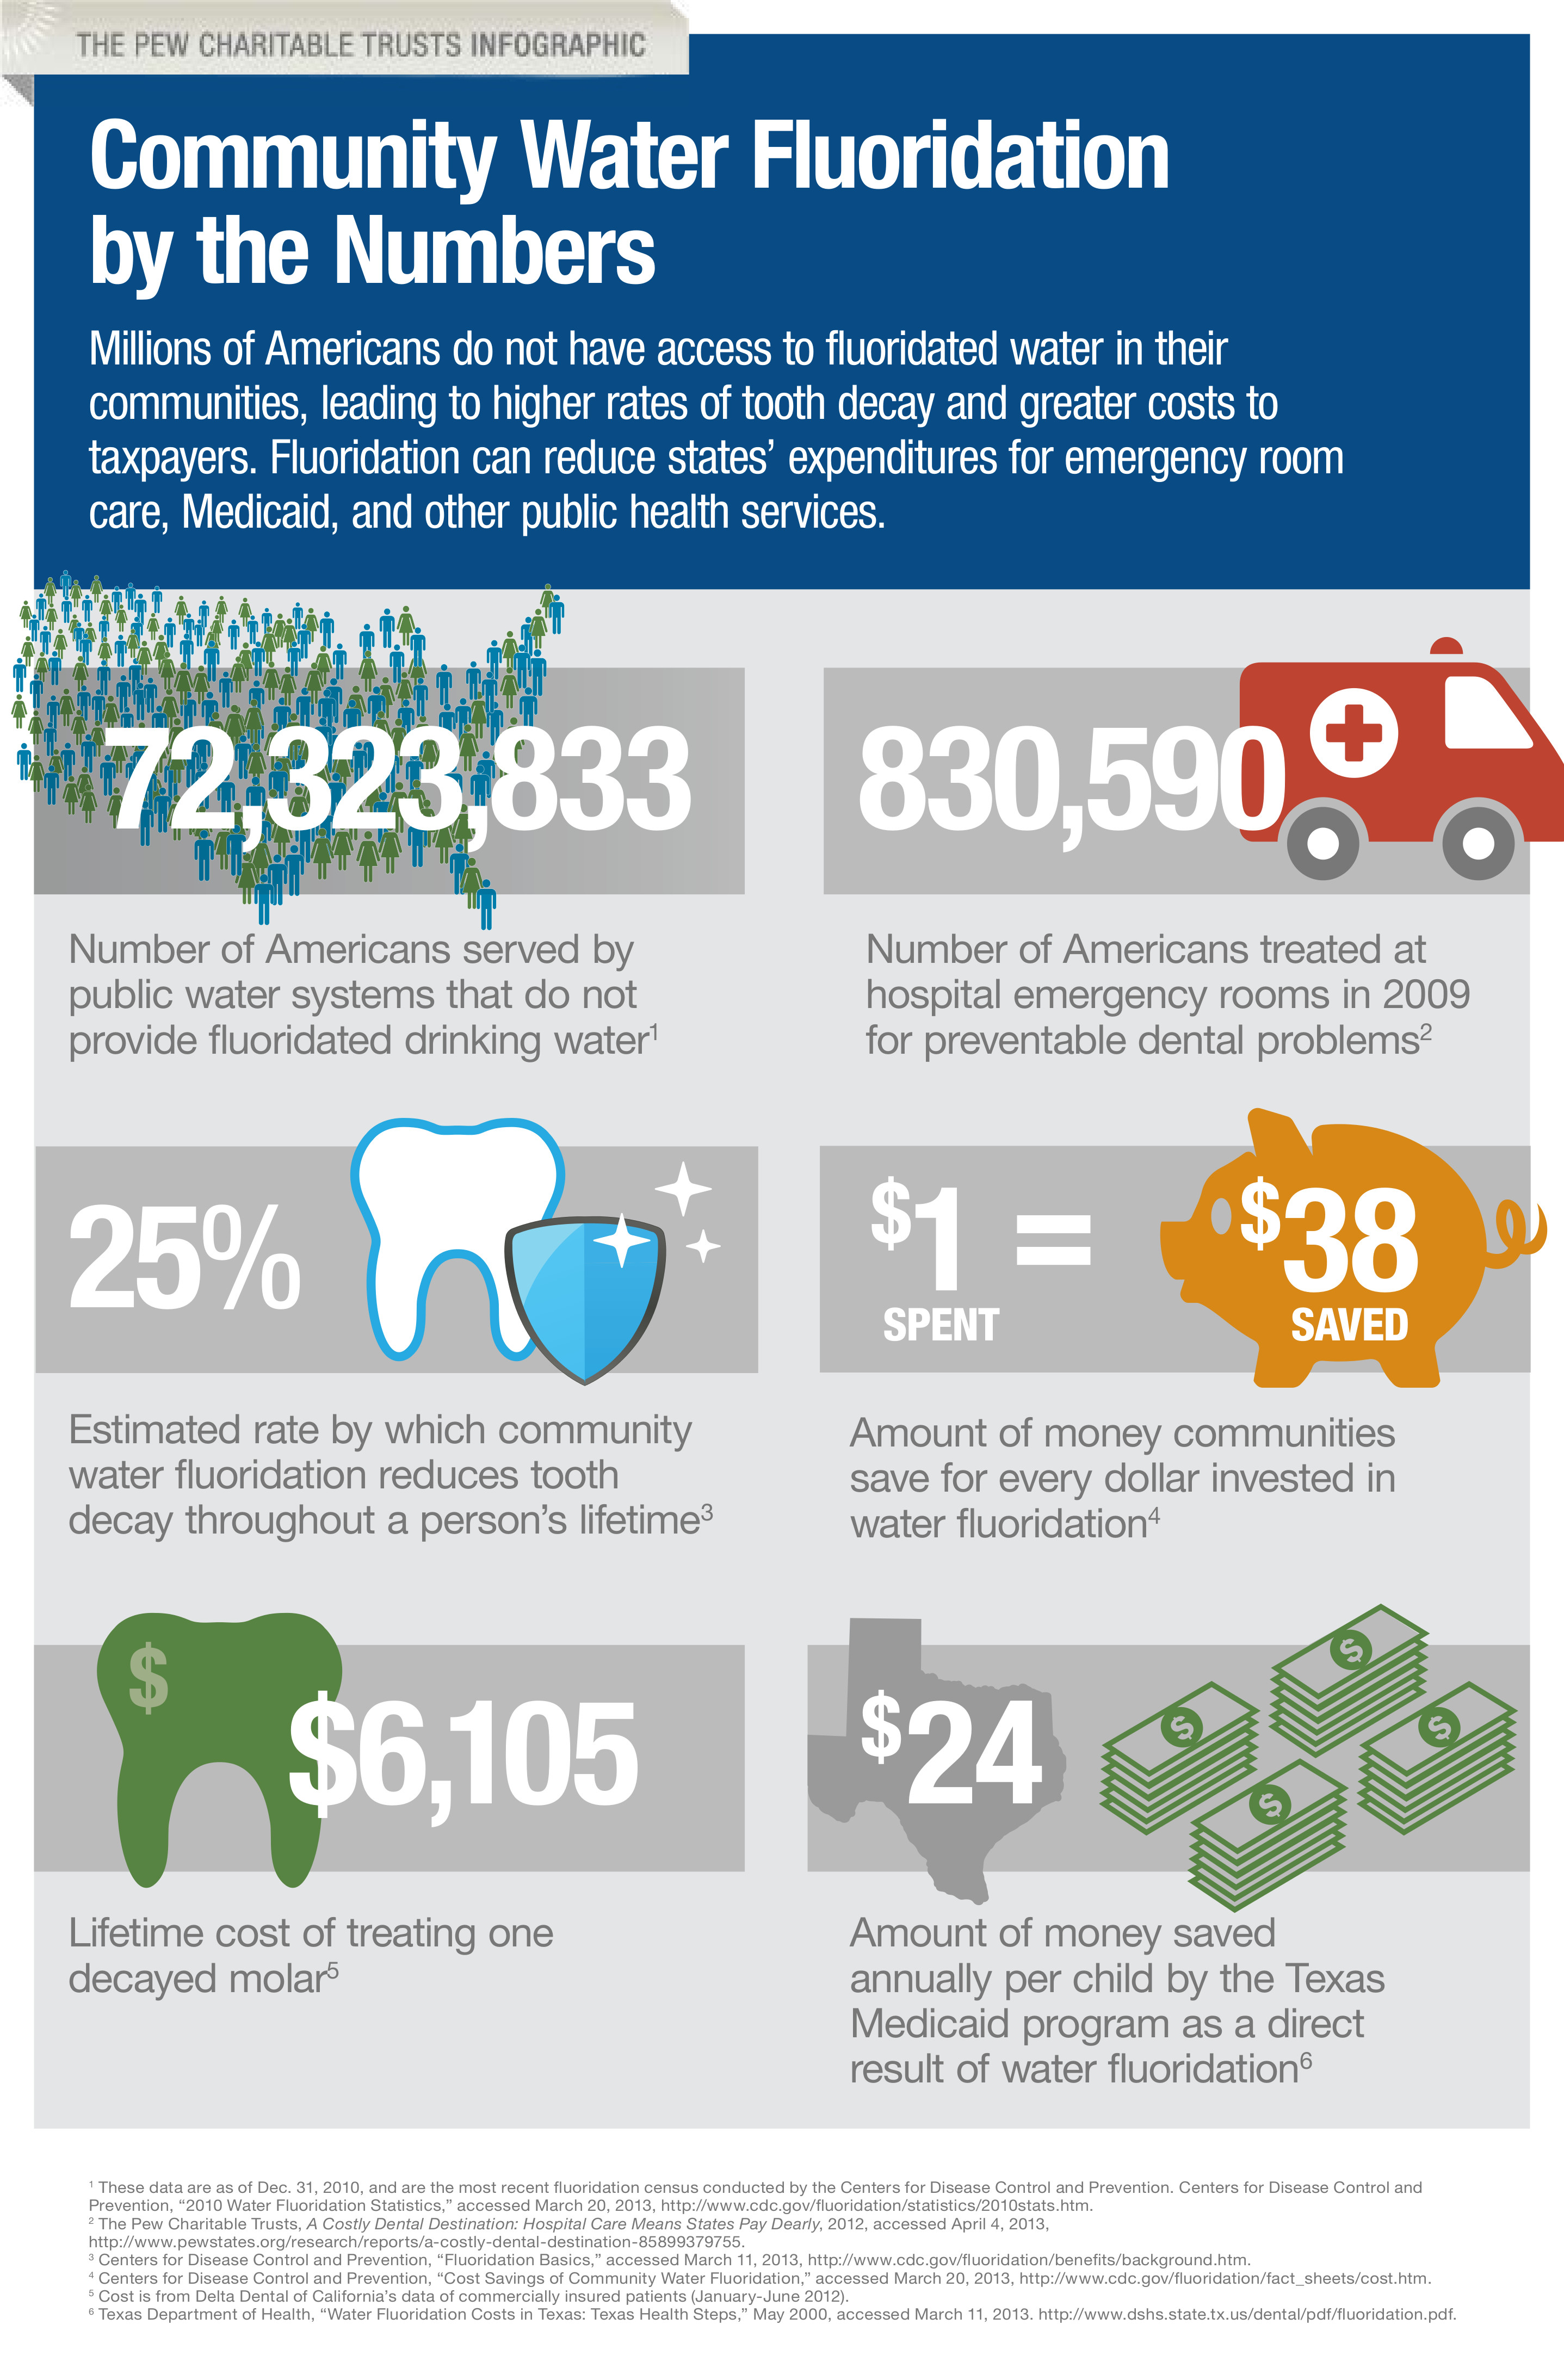 Community Fluoridation Infographic